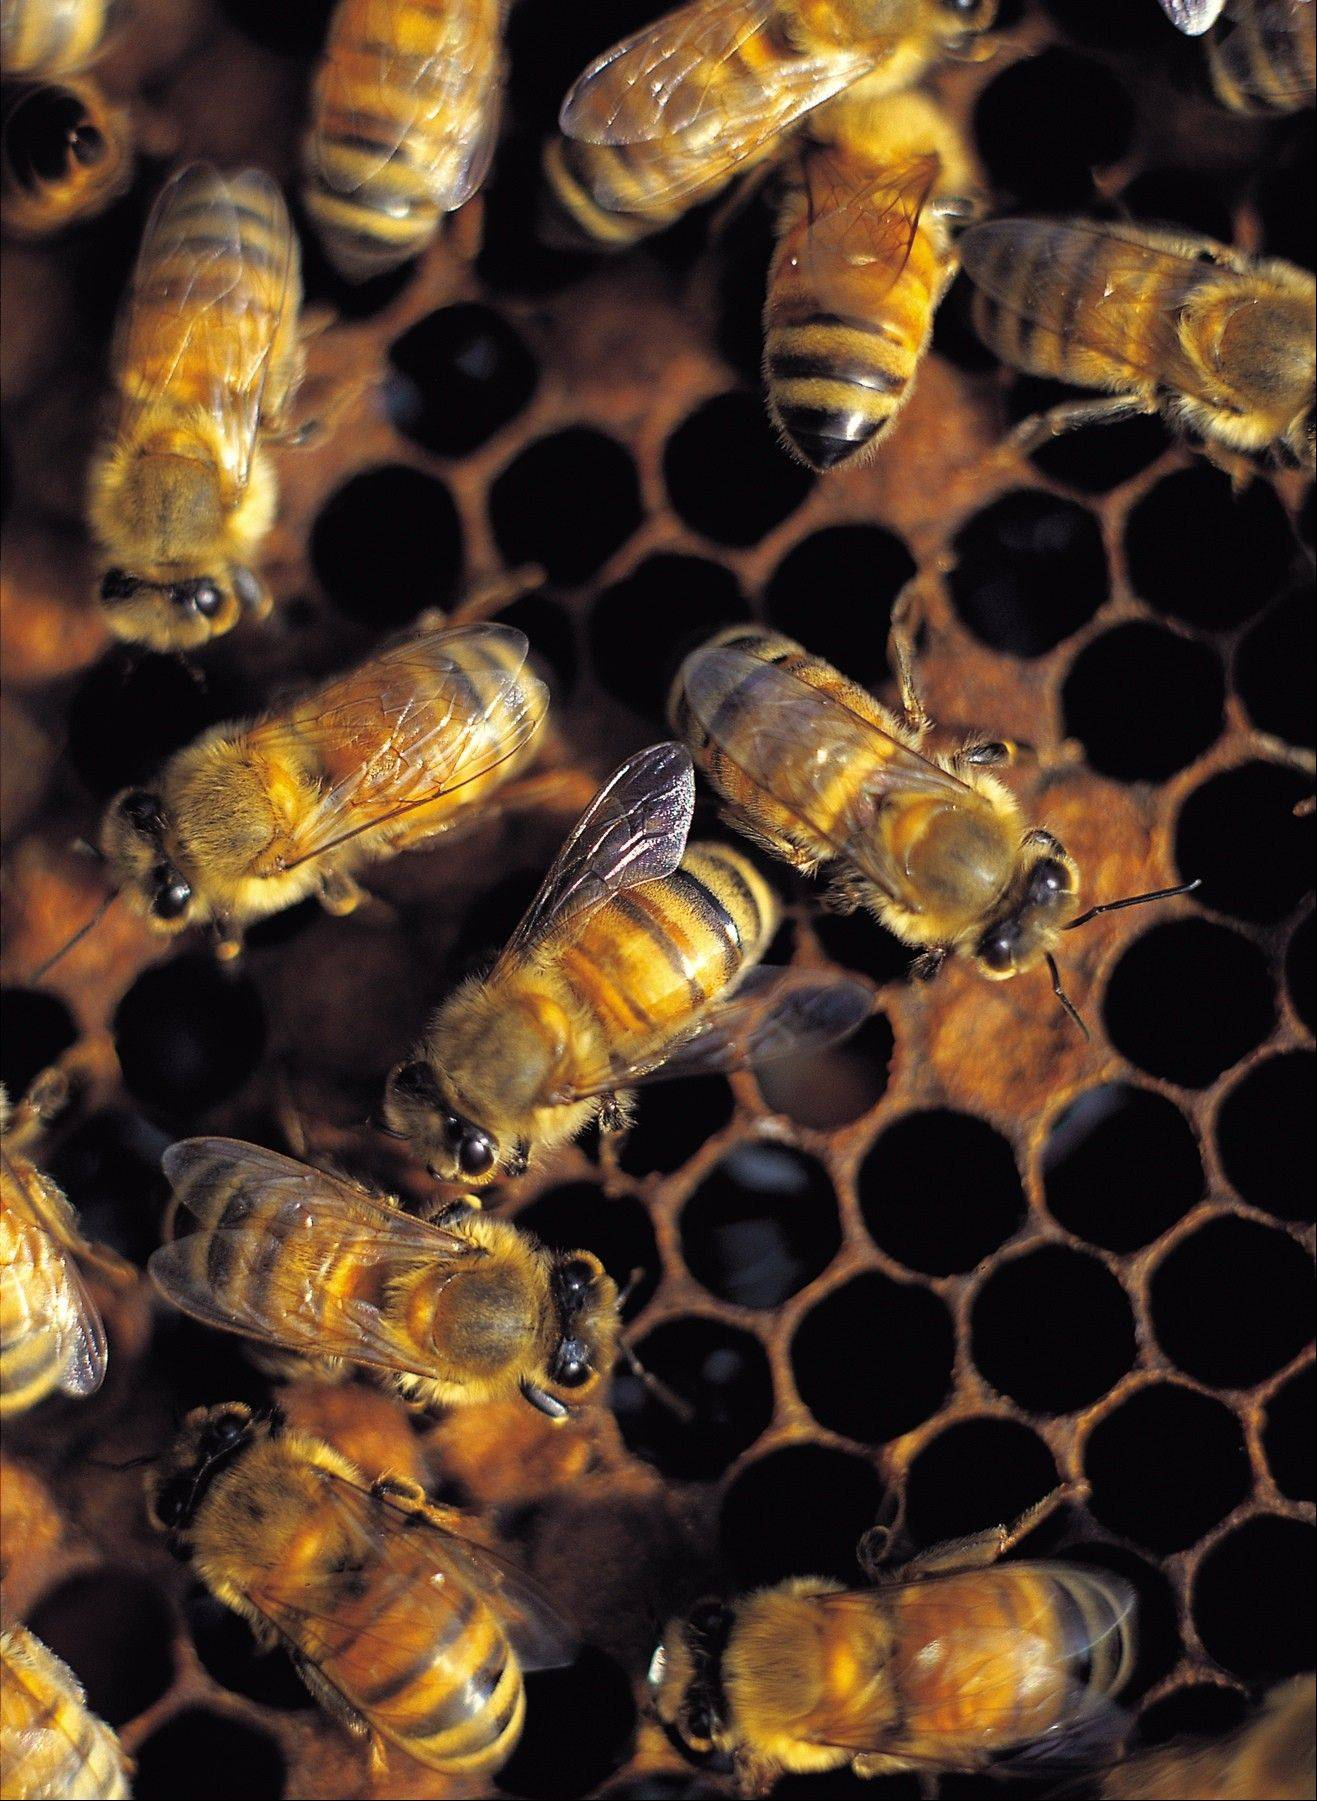 Have you heard the buzz? Carpentersville and West Dundee ended their bans on backyard beekeeping in 2013.